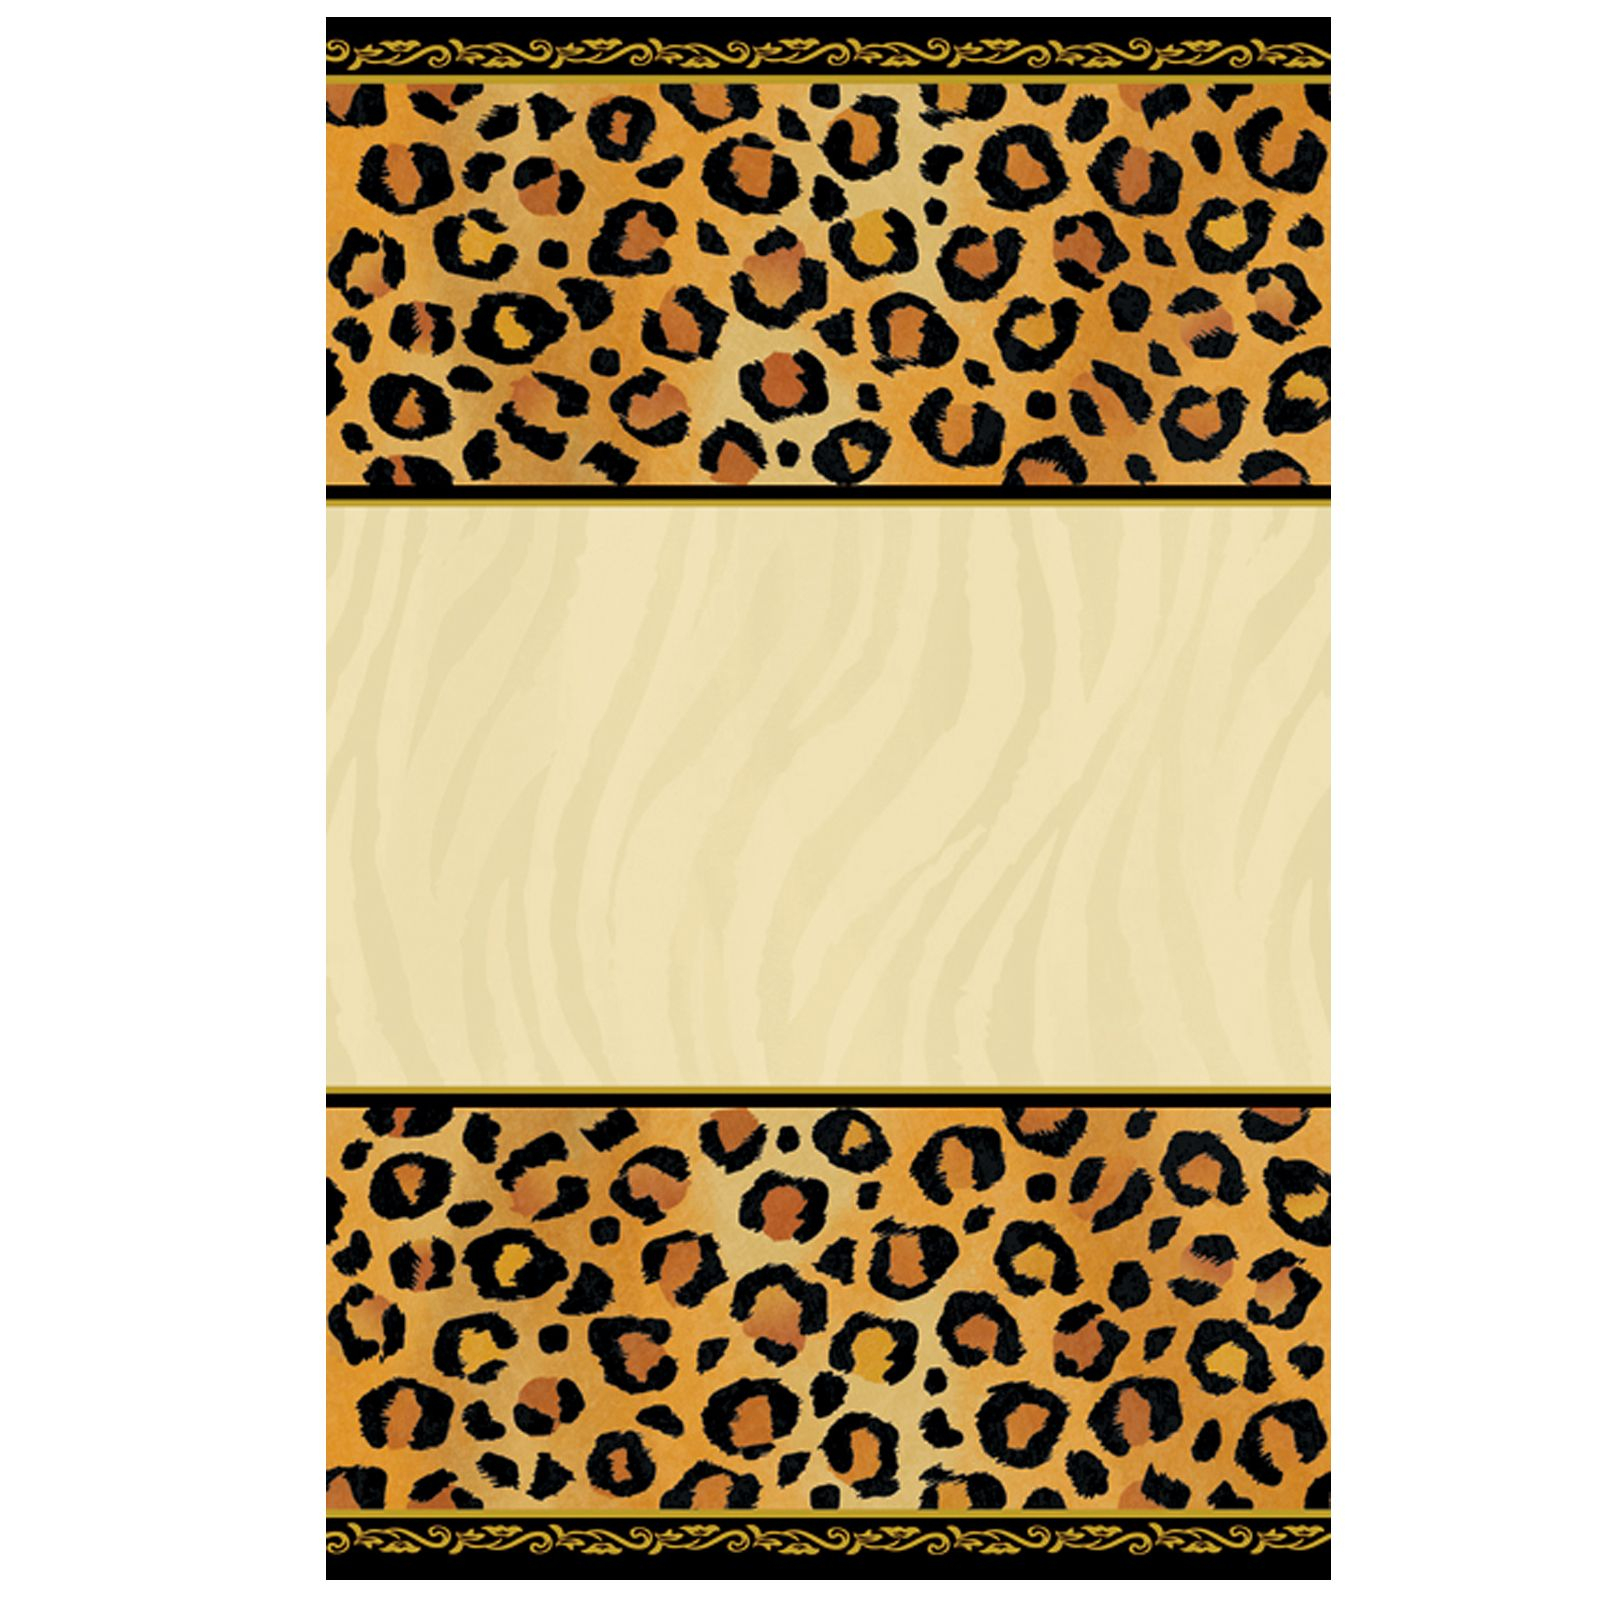 Leopard Print Invitations Printable Free Cakepins | Printables - Free Printable Animal Print Birthday Invitations